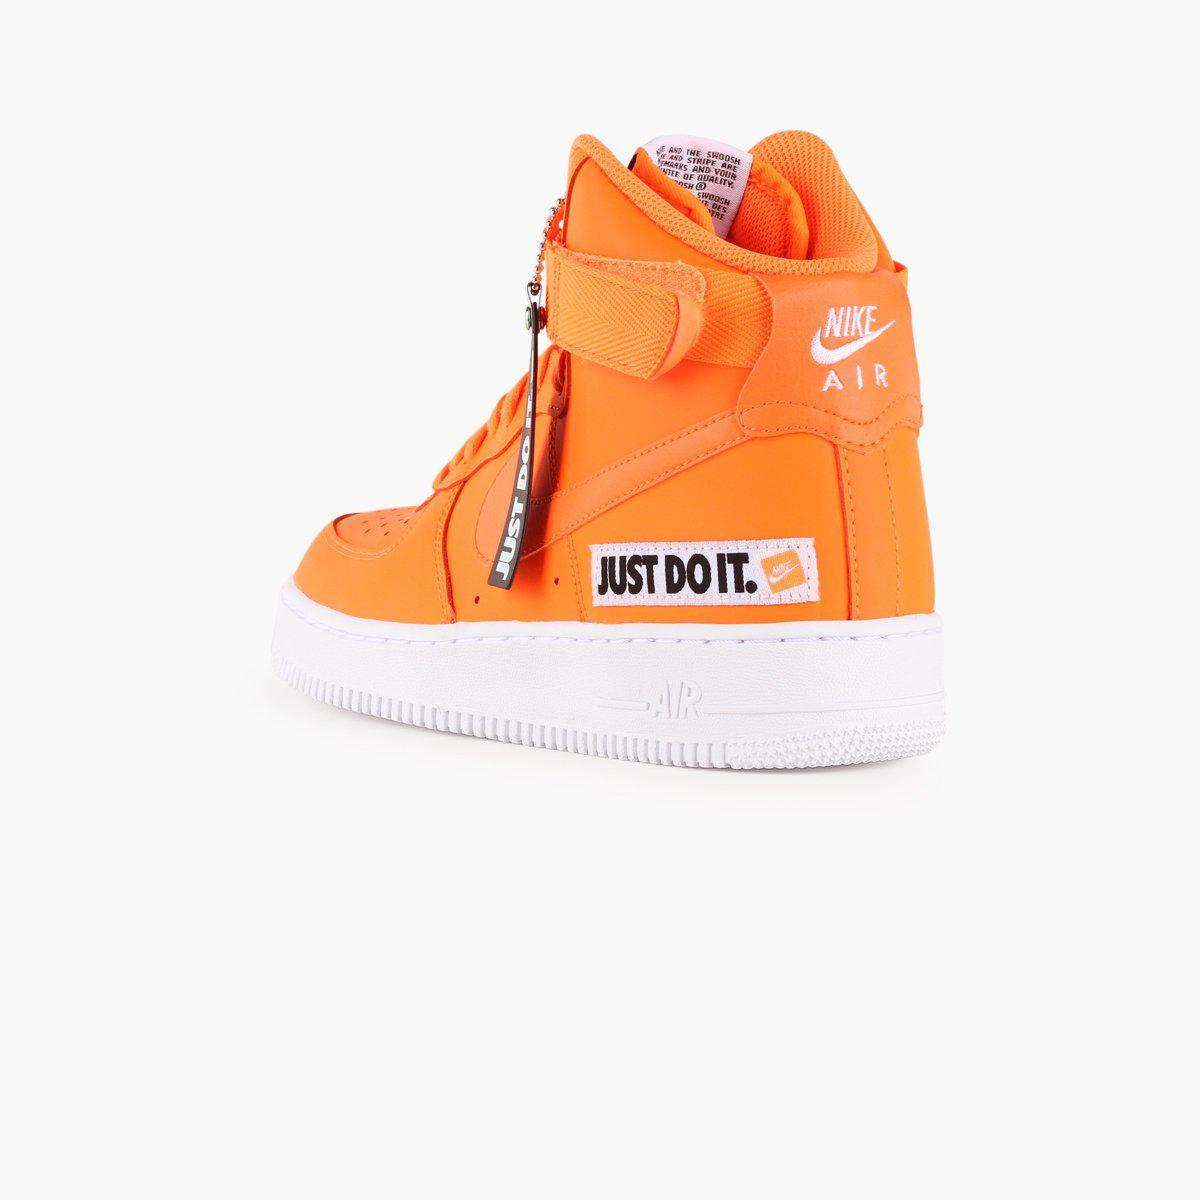 more photos 843c3 e7371 Nike Air Force 1 High Lx Leather Women s in Orange - Lyst